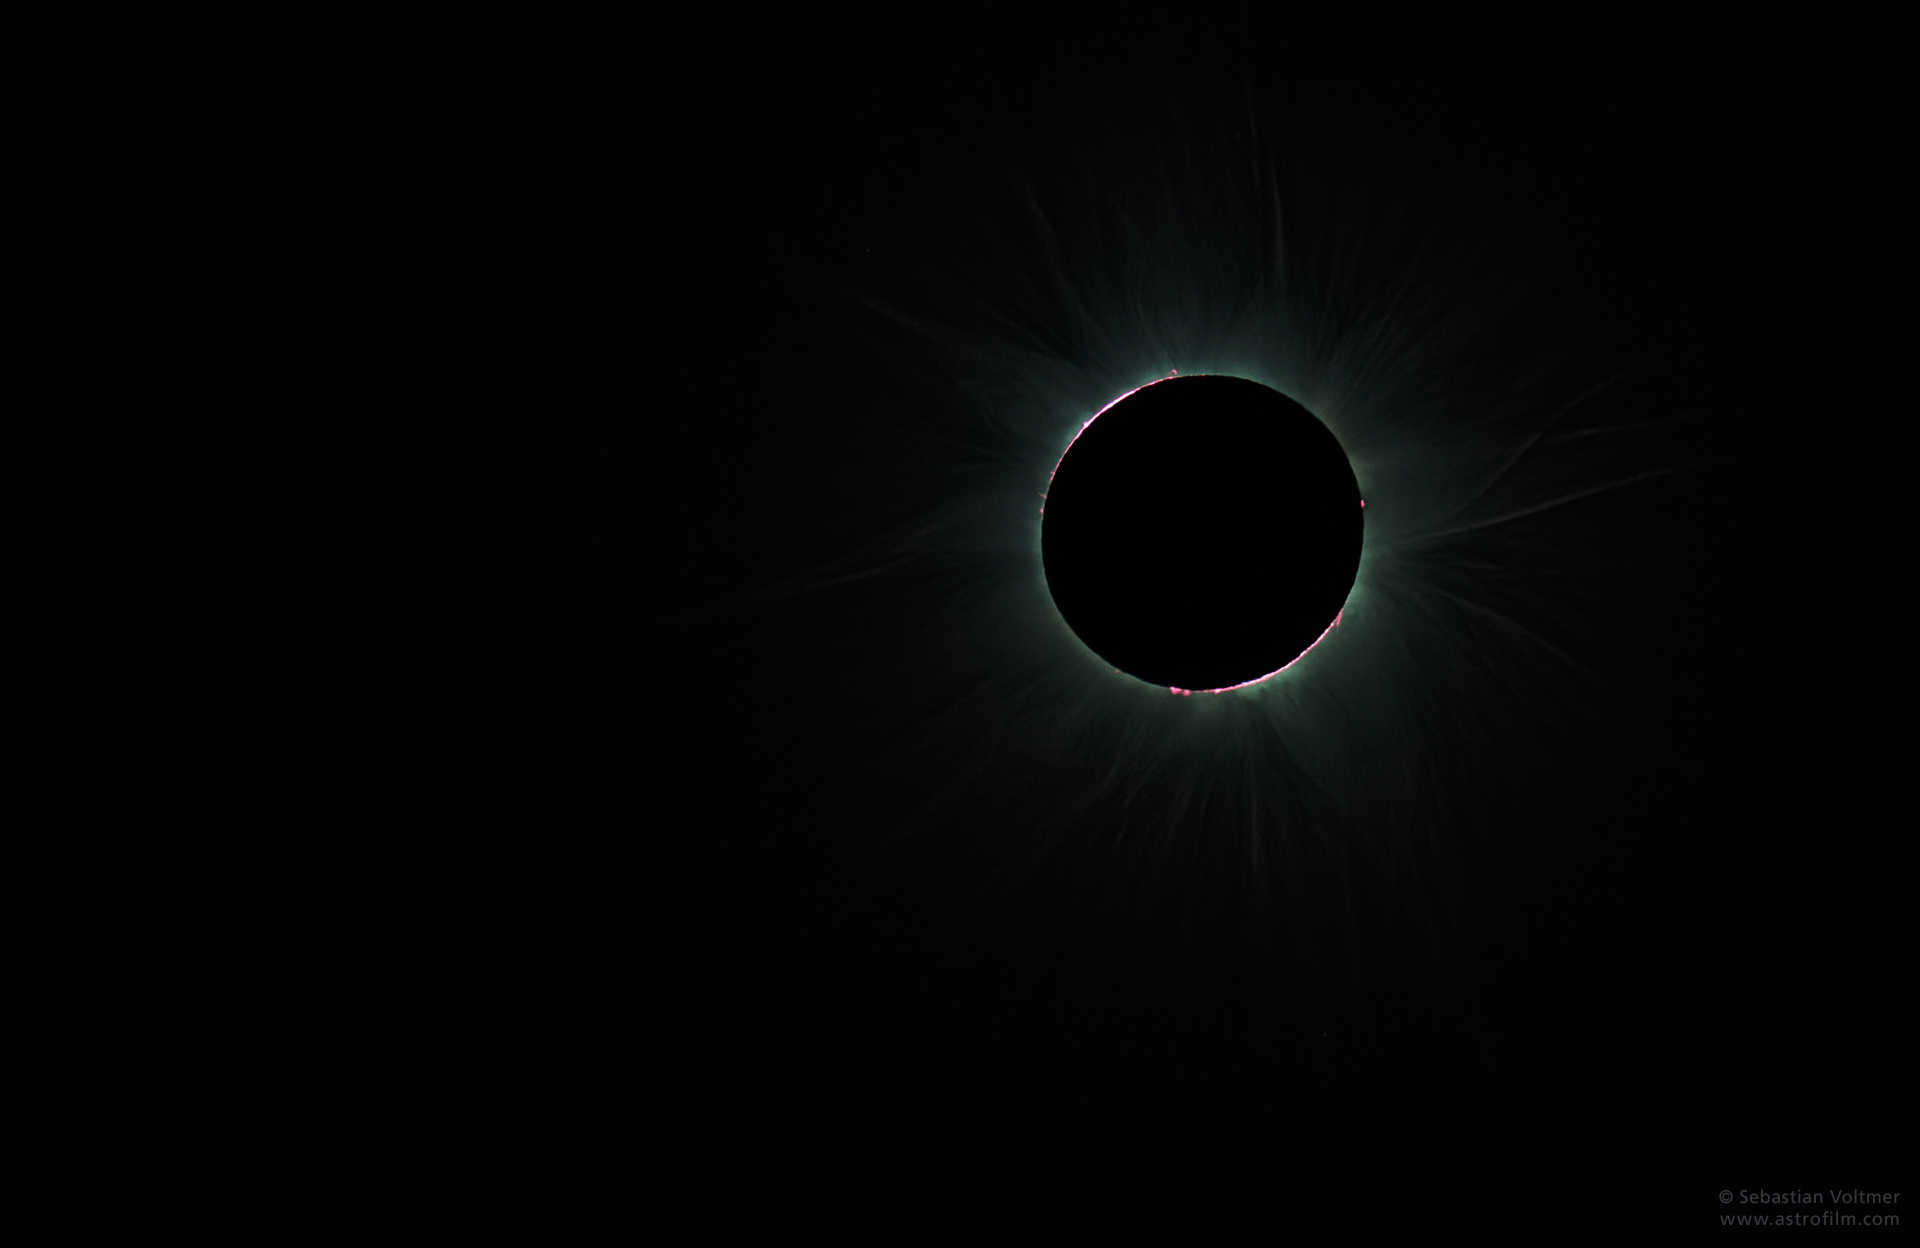 Solar Eclipse - Moment of Totality, 2012